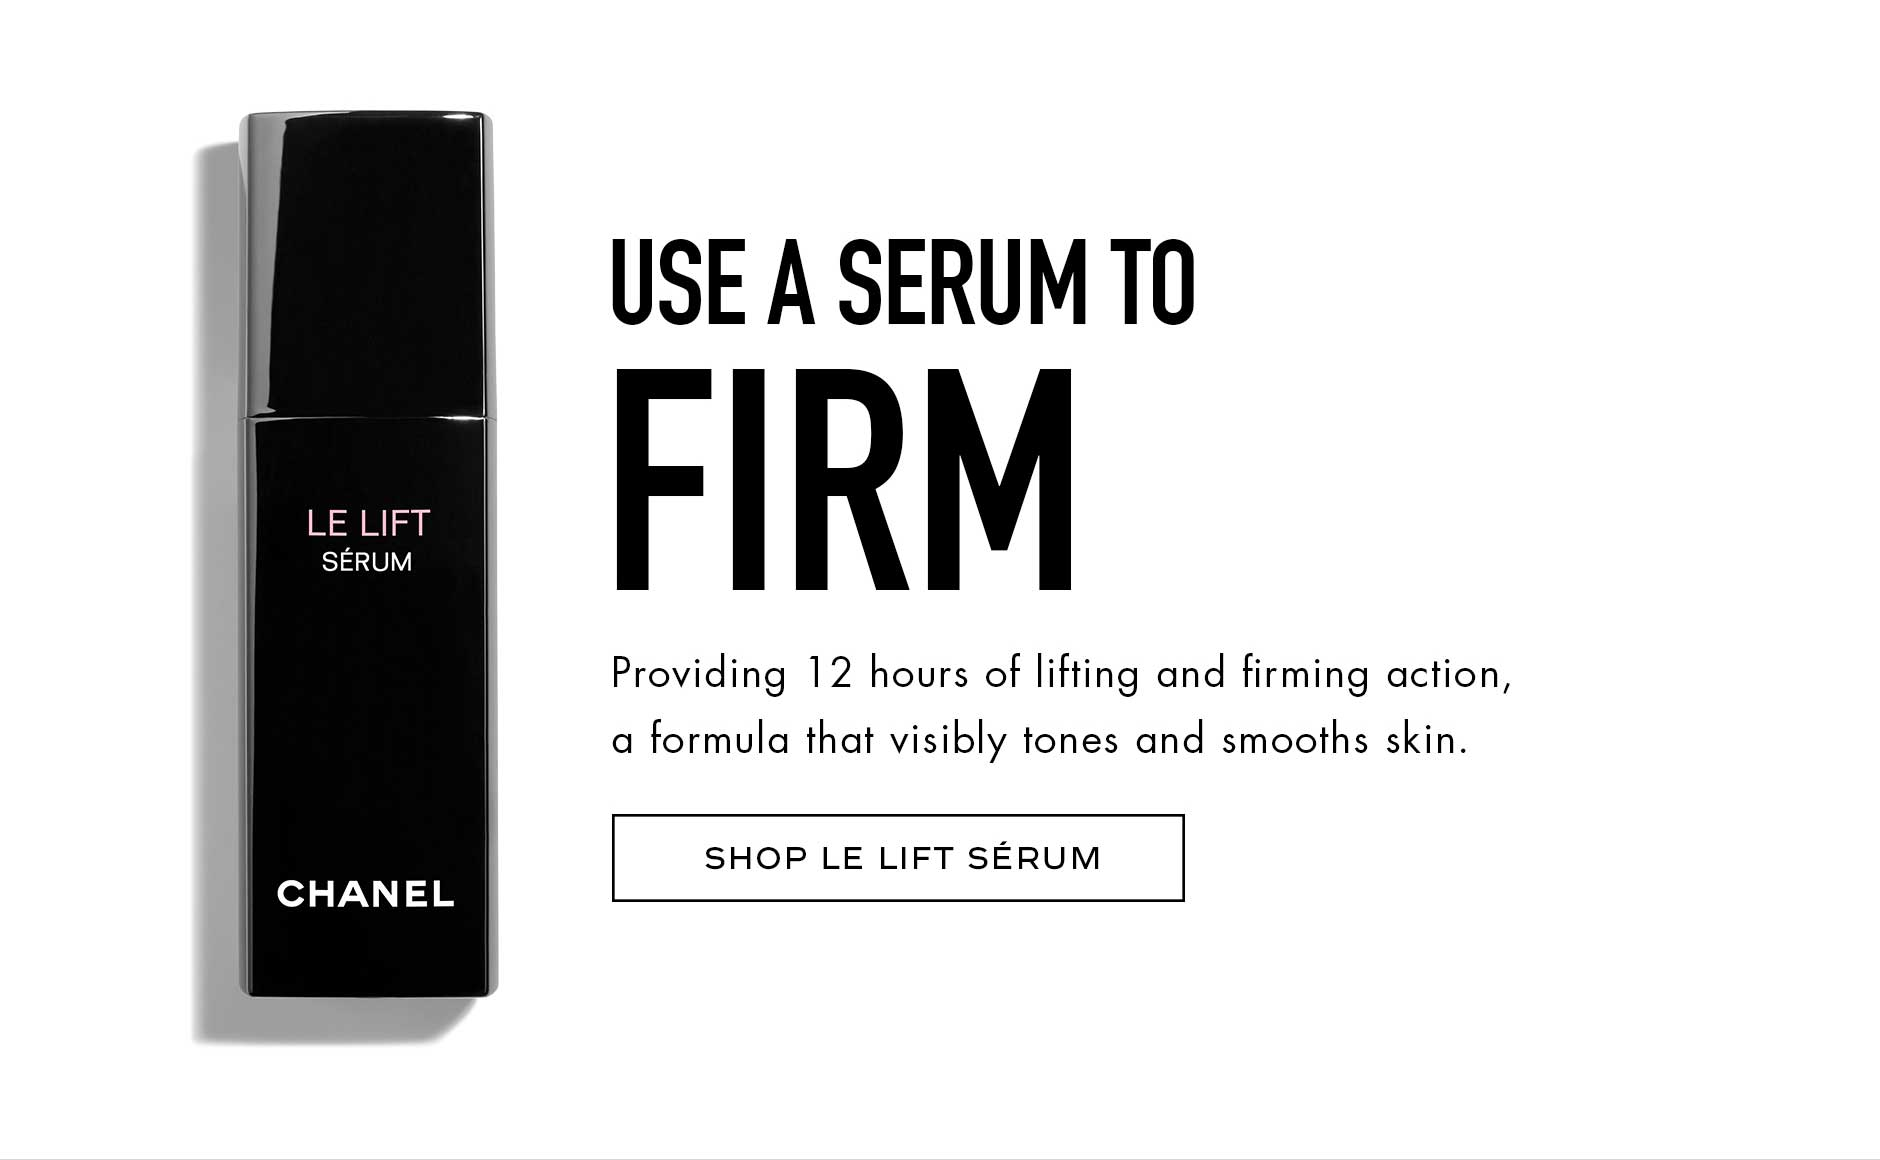 Use a serum to firm - Providing 12 hours of lifting and firming action, a formula that visibly tones and smooths skin.